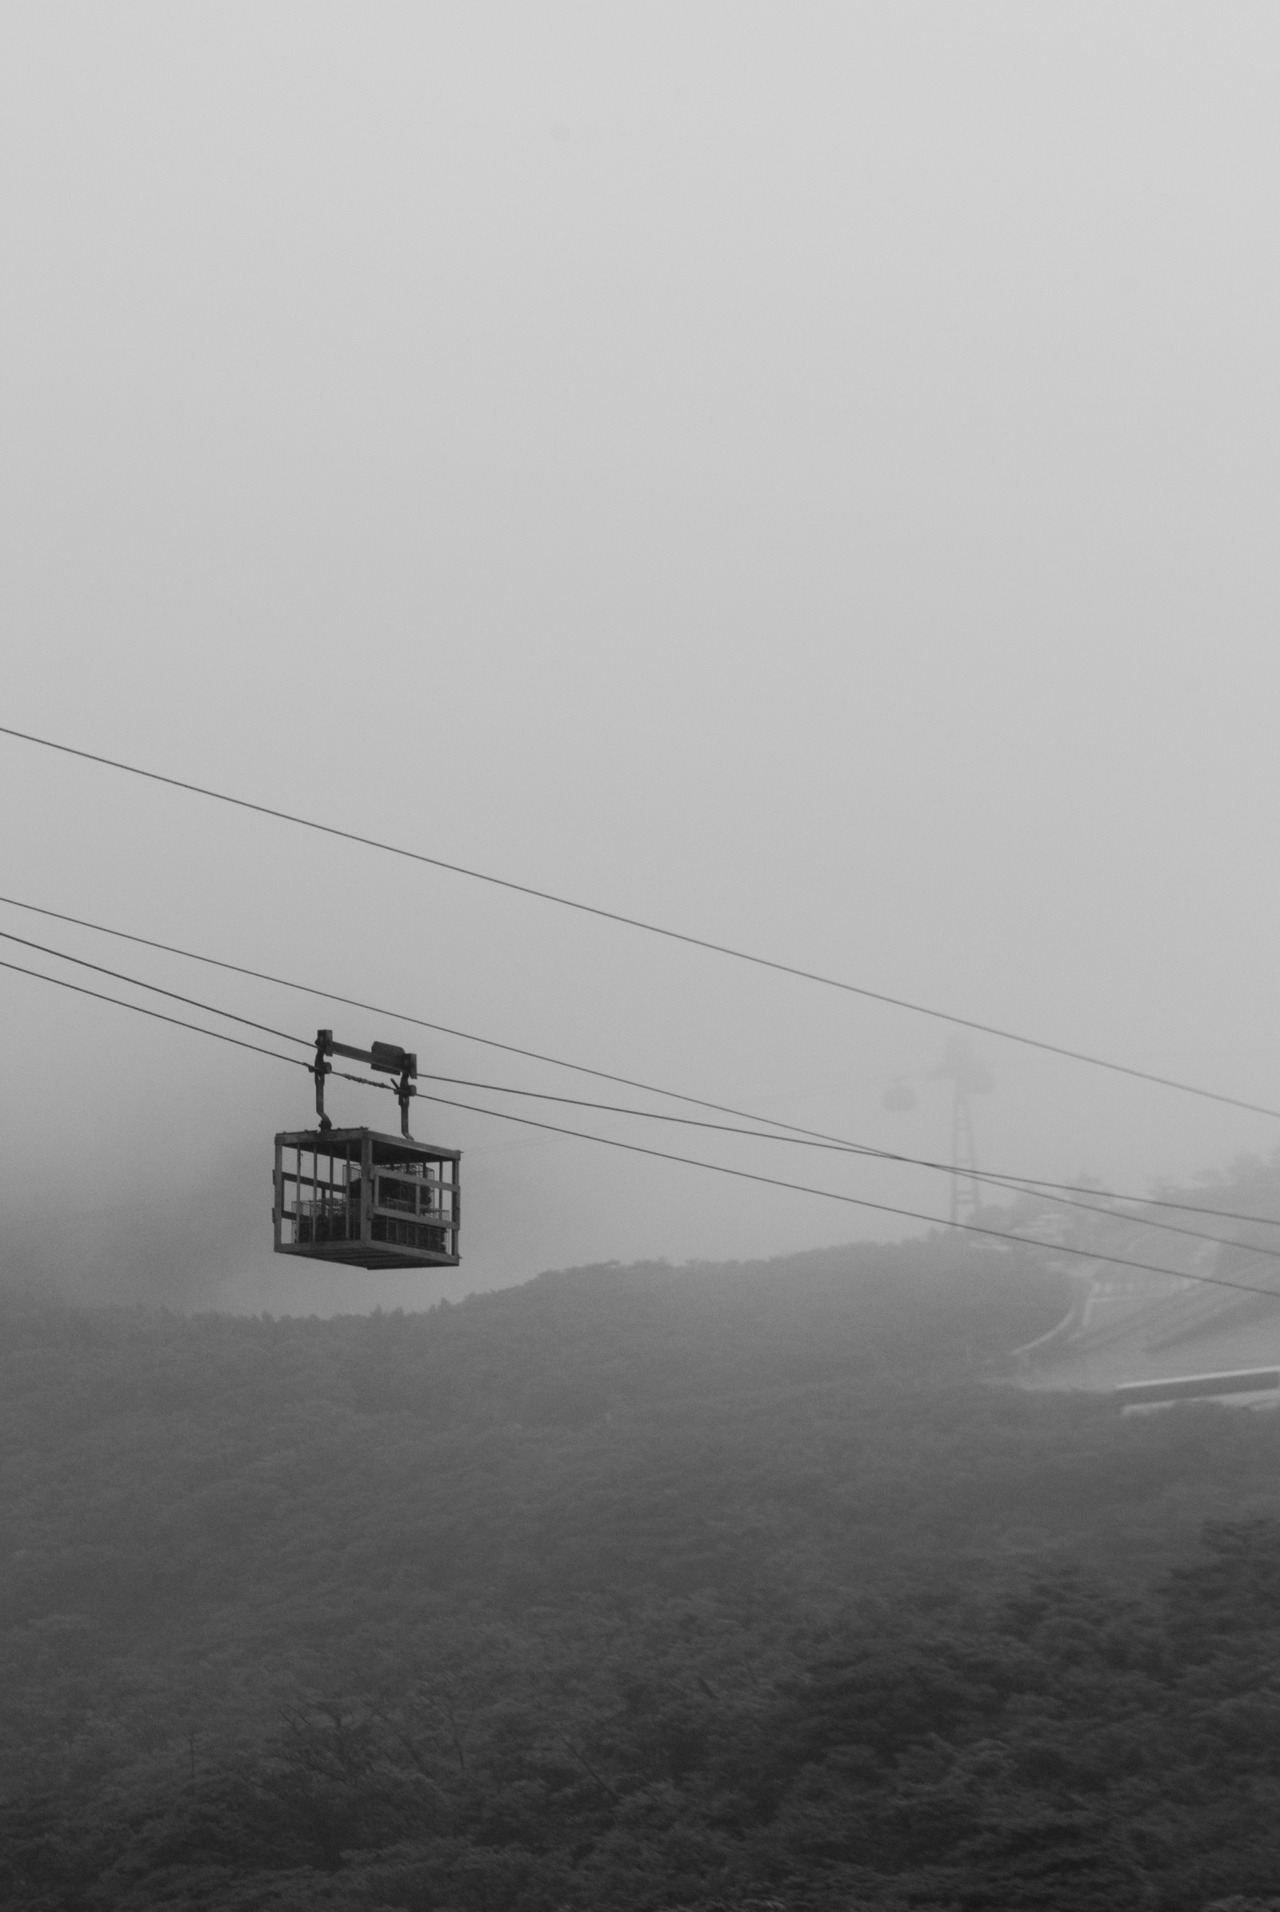 taken in Hakone on Saturday. it was so foggy and hazy you could barely see the mountains in the distance. i really like the grey, lonely effect though